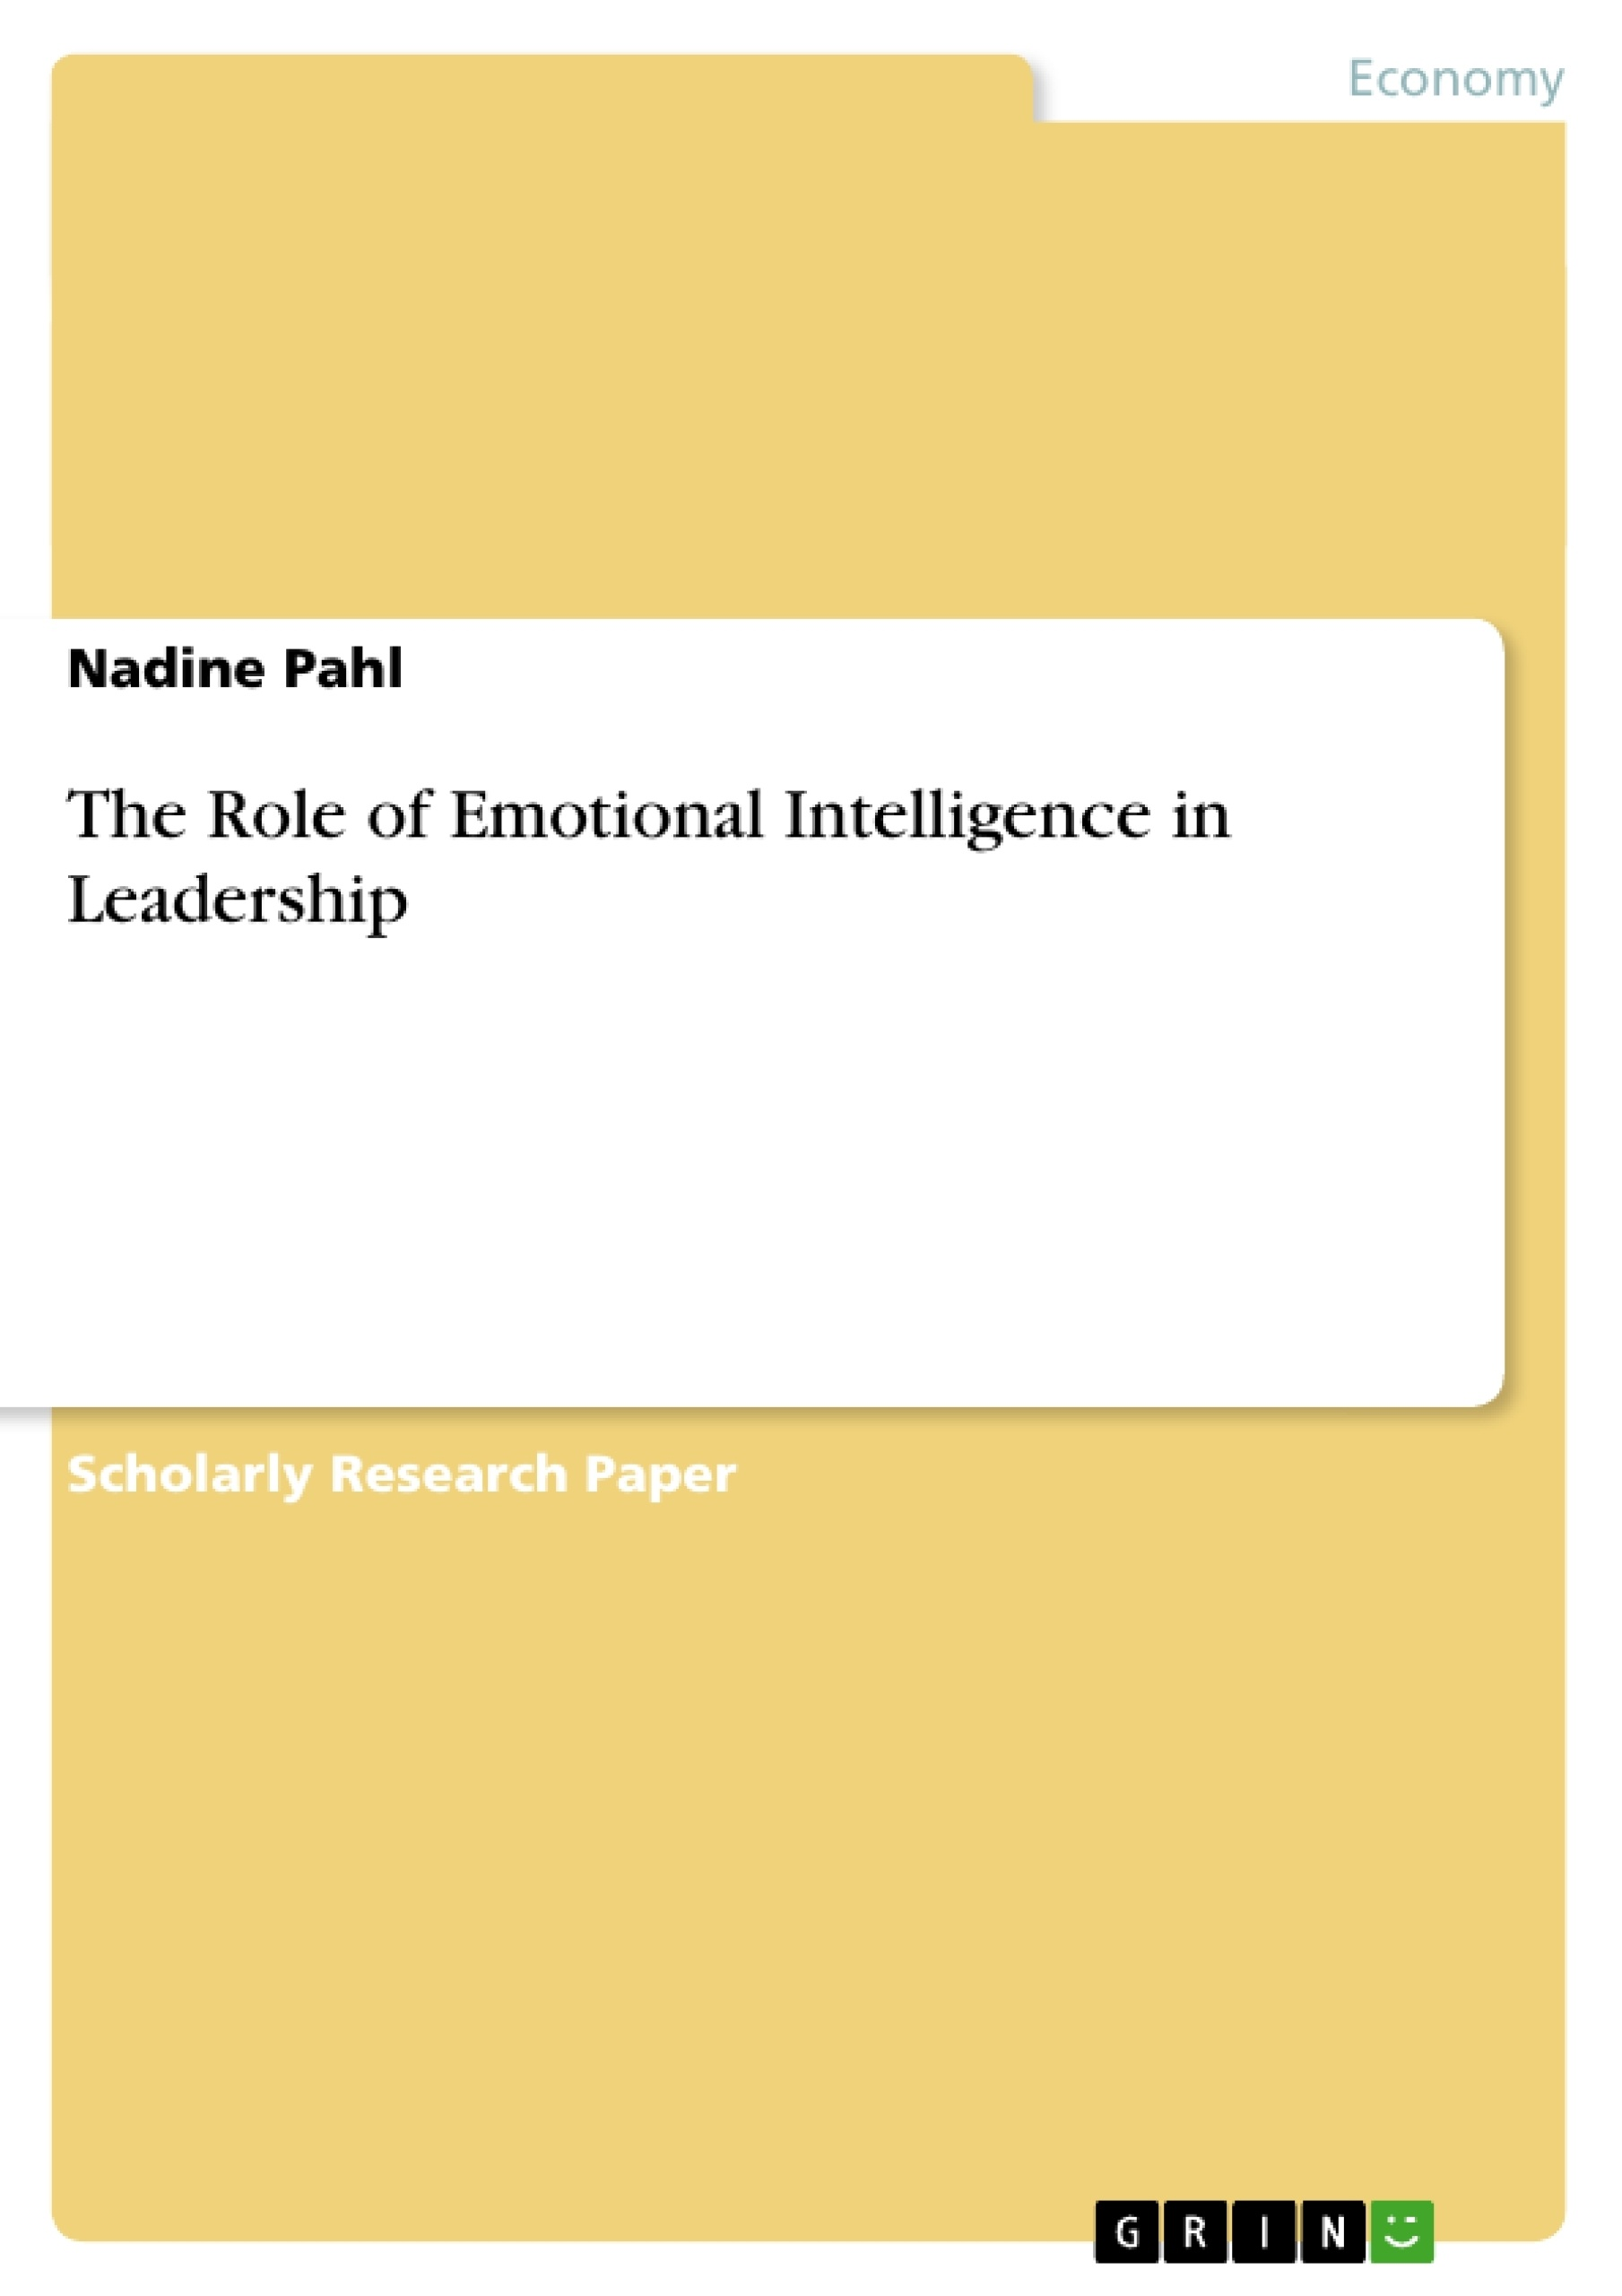 Title: The Role of Emotional Intelligence in Leadership